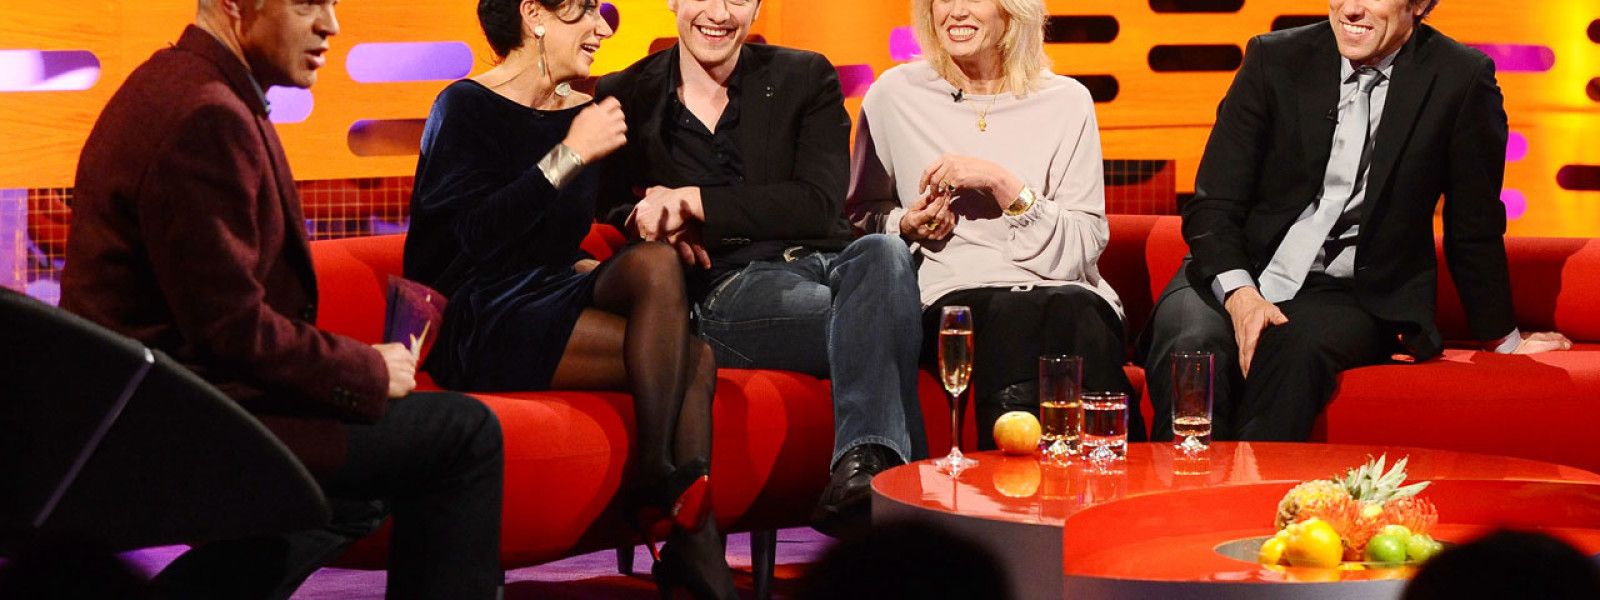 thegrahamnortonshow_photo_s10_e02_04_web